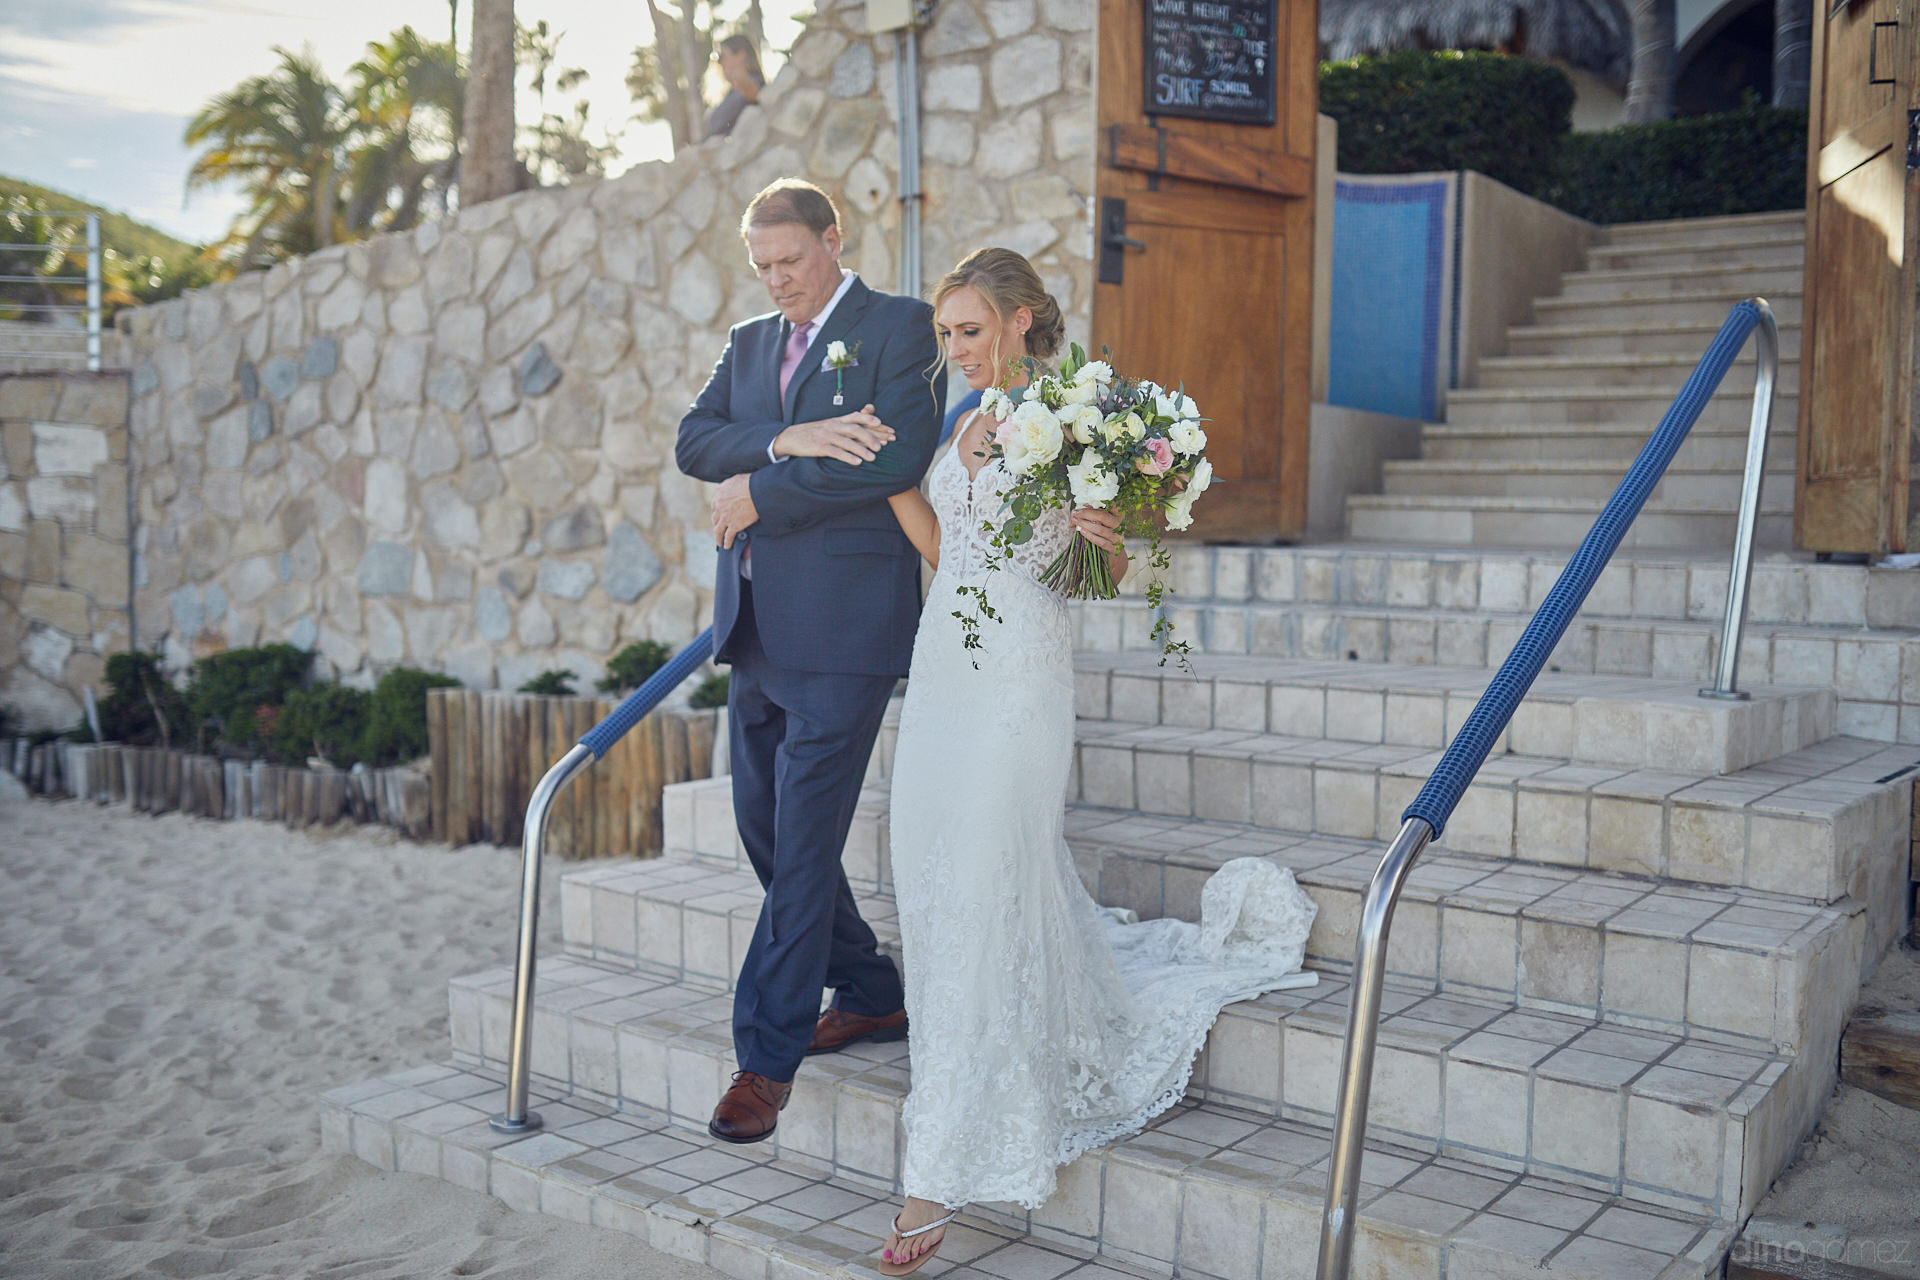 Cabo Wedding Photographers Brought Their Best In This One - Mm